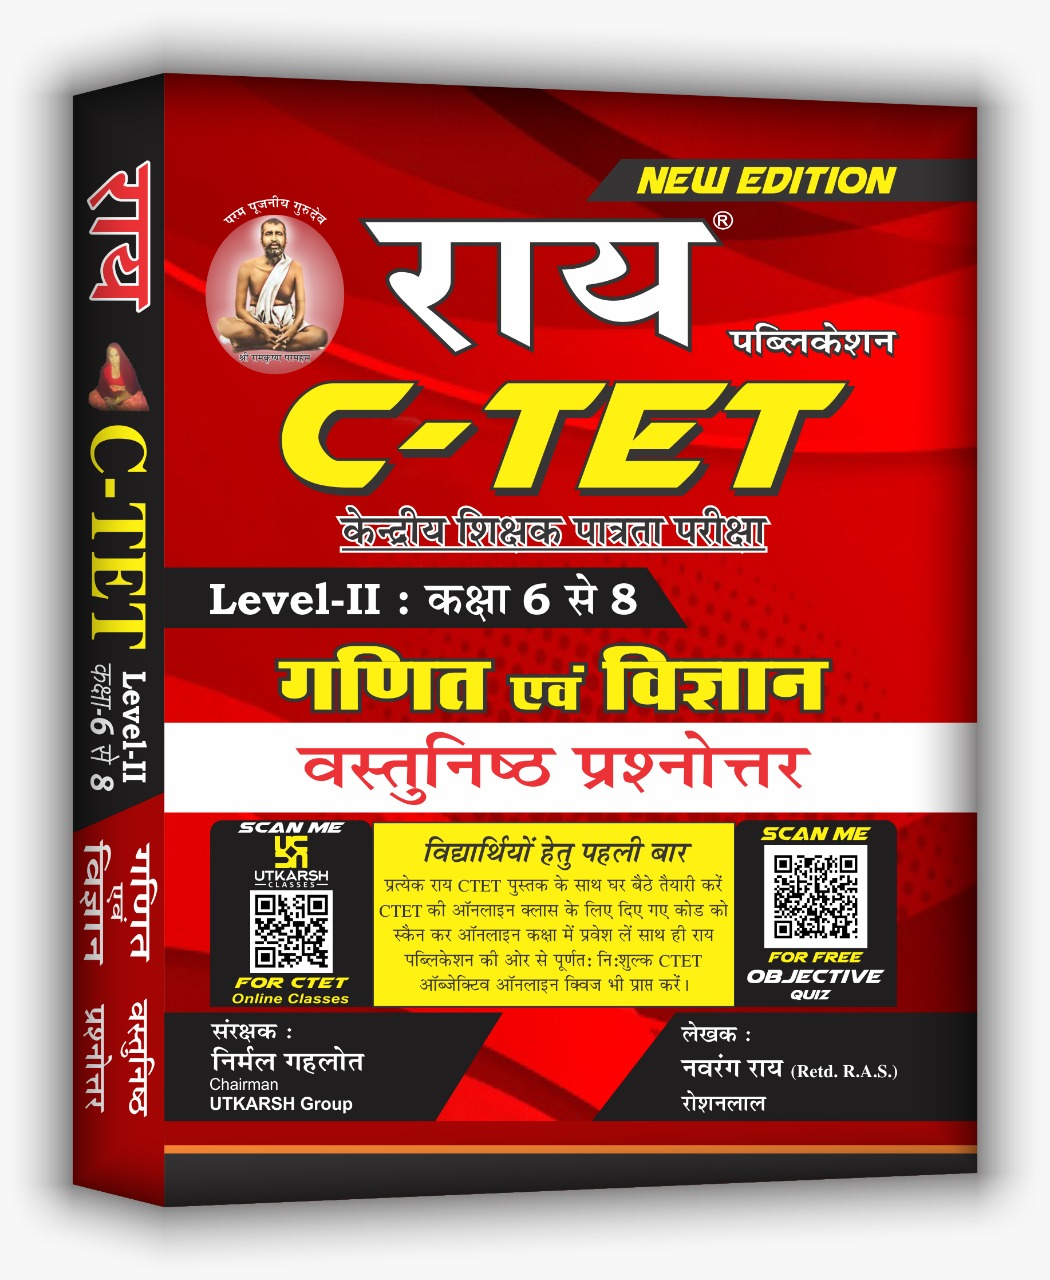 CTET LEVEL - II Class 6 to 8 Ganit avem Vigyan Objective Book (kendriya shikshak patrata pariksha) ( Bal Vikas , Bhasha Hindi ,English,Ganit  & Samanya Vigyan  ) (CTET Level - 2 Ganit avem Vigyan)